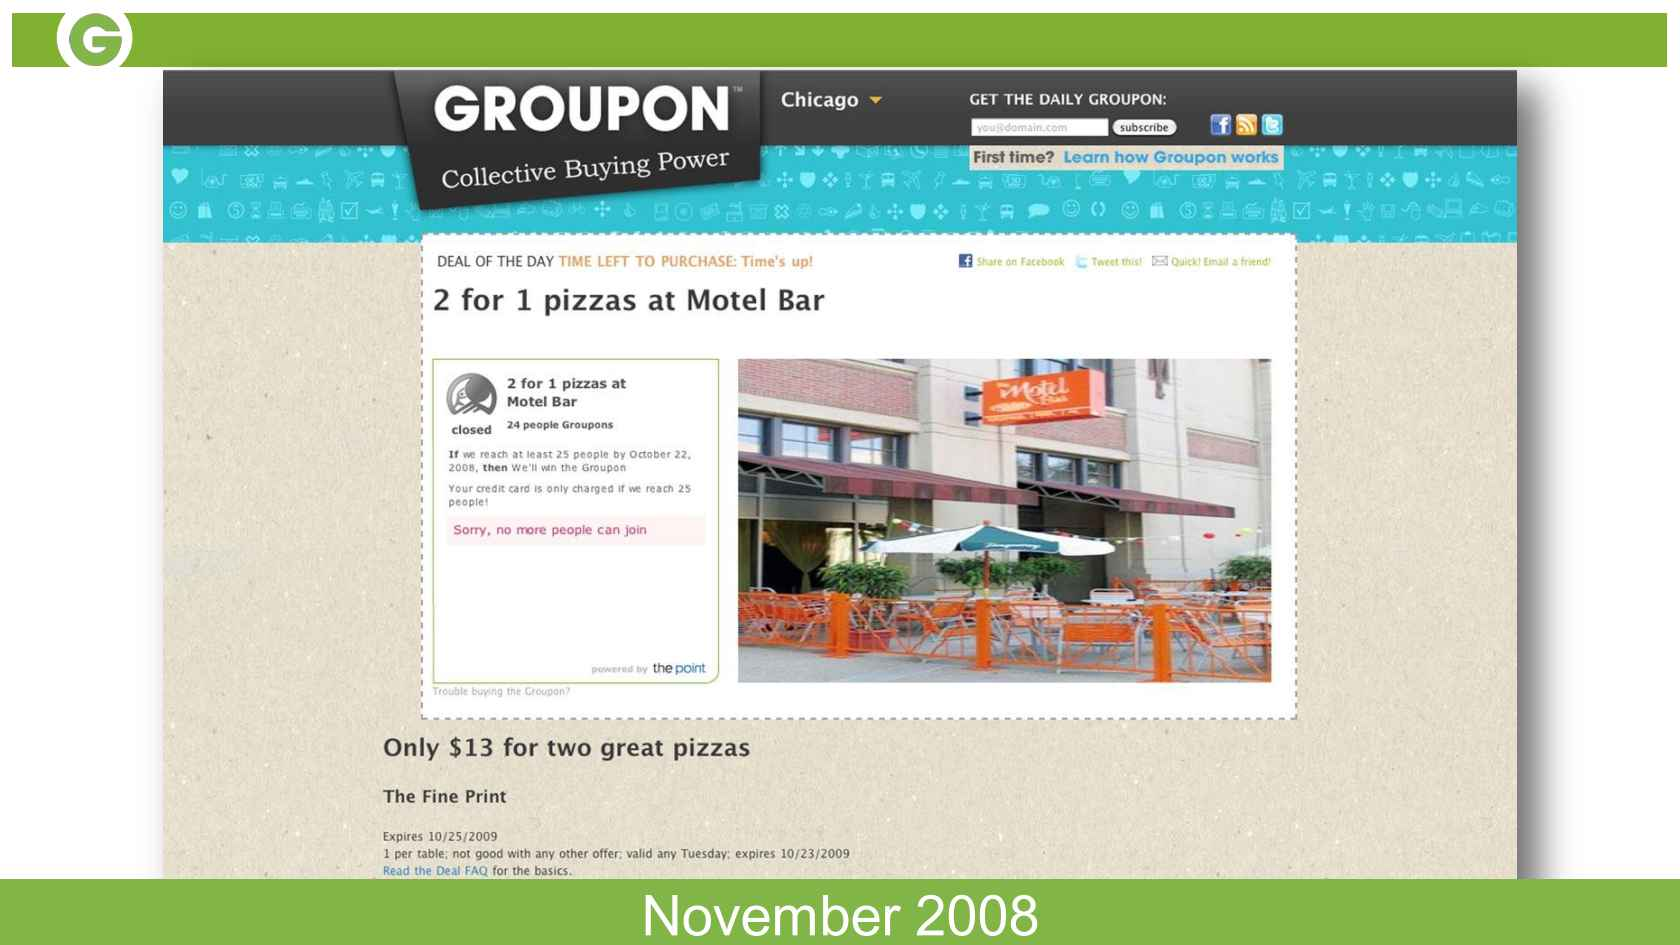 Groupon Engineering: Building Culture through the Experimentation